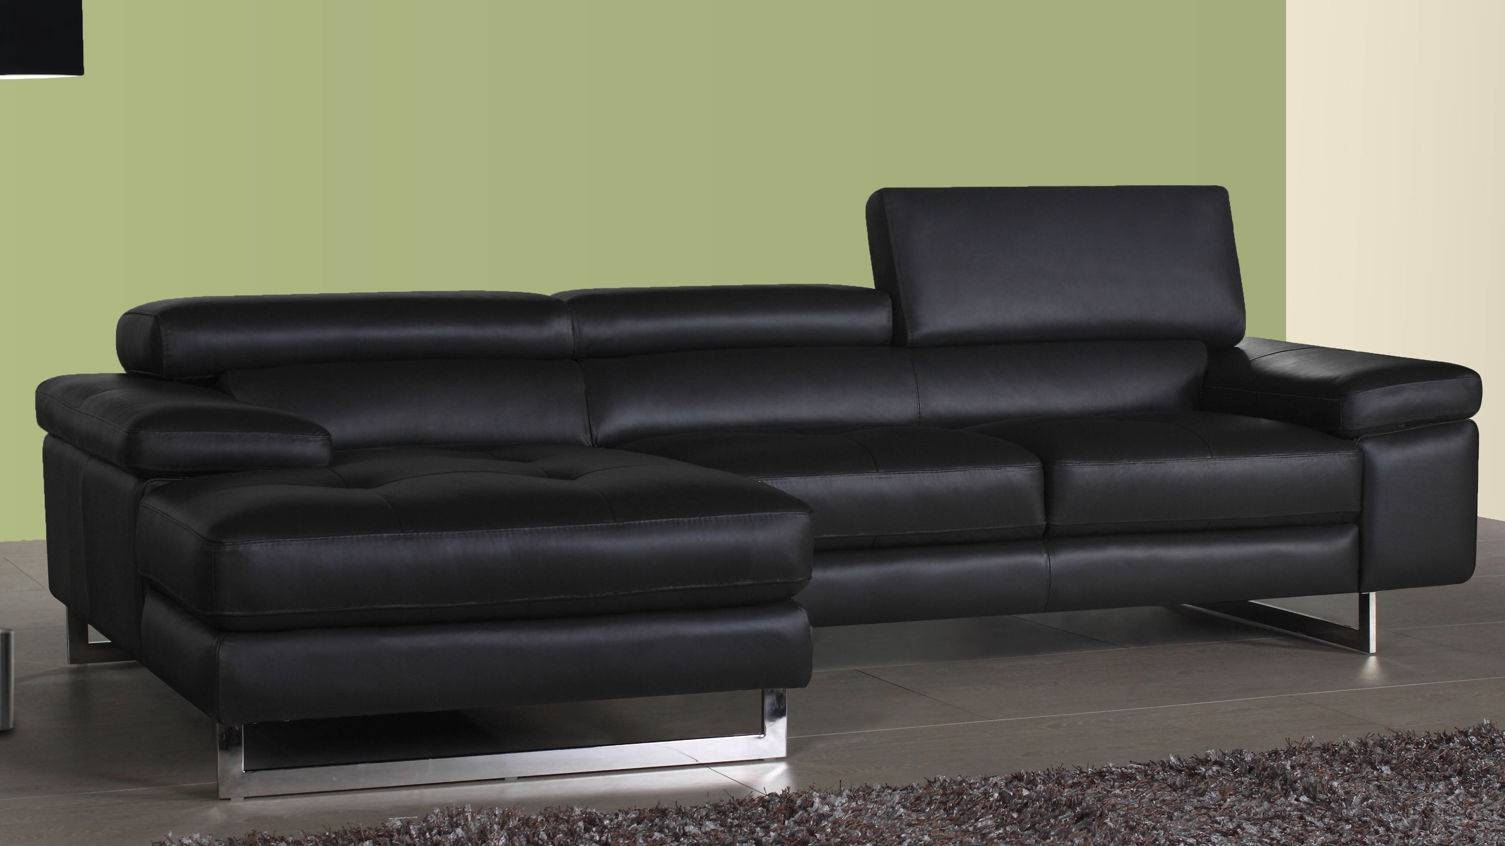 Leather Chaise Sofa Uk – Thesecretconsul With Regard To Black Leather Chaise Sofas (View 11 of 15)